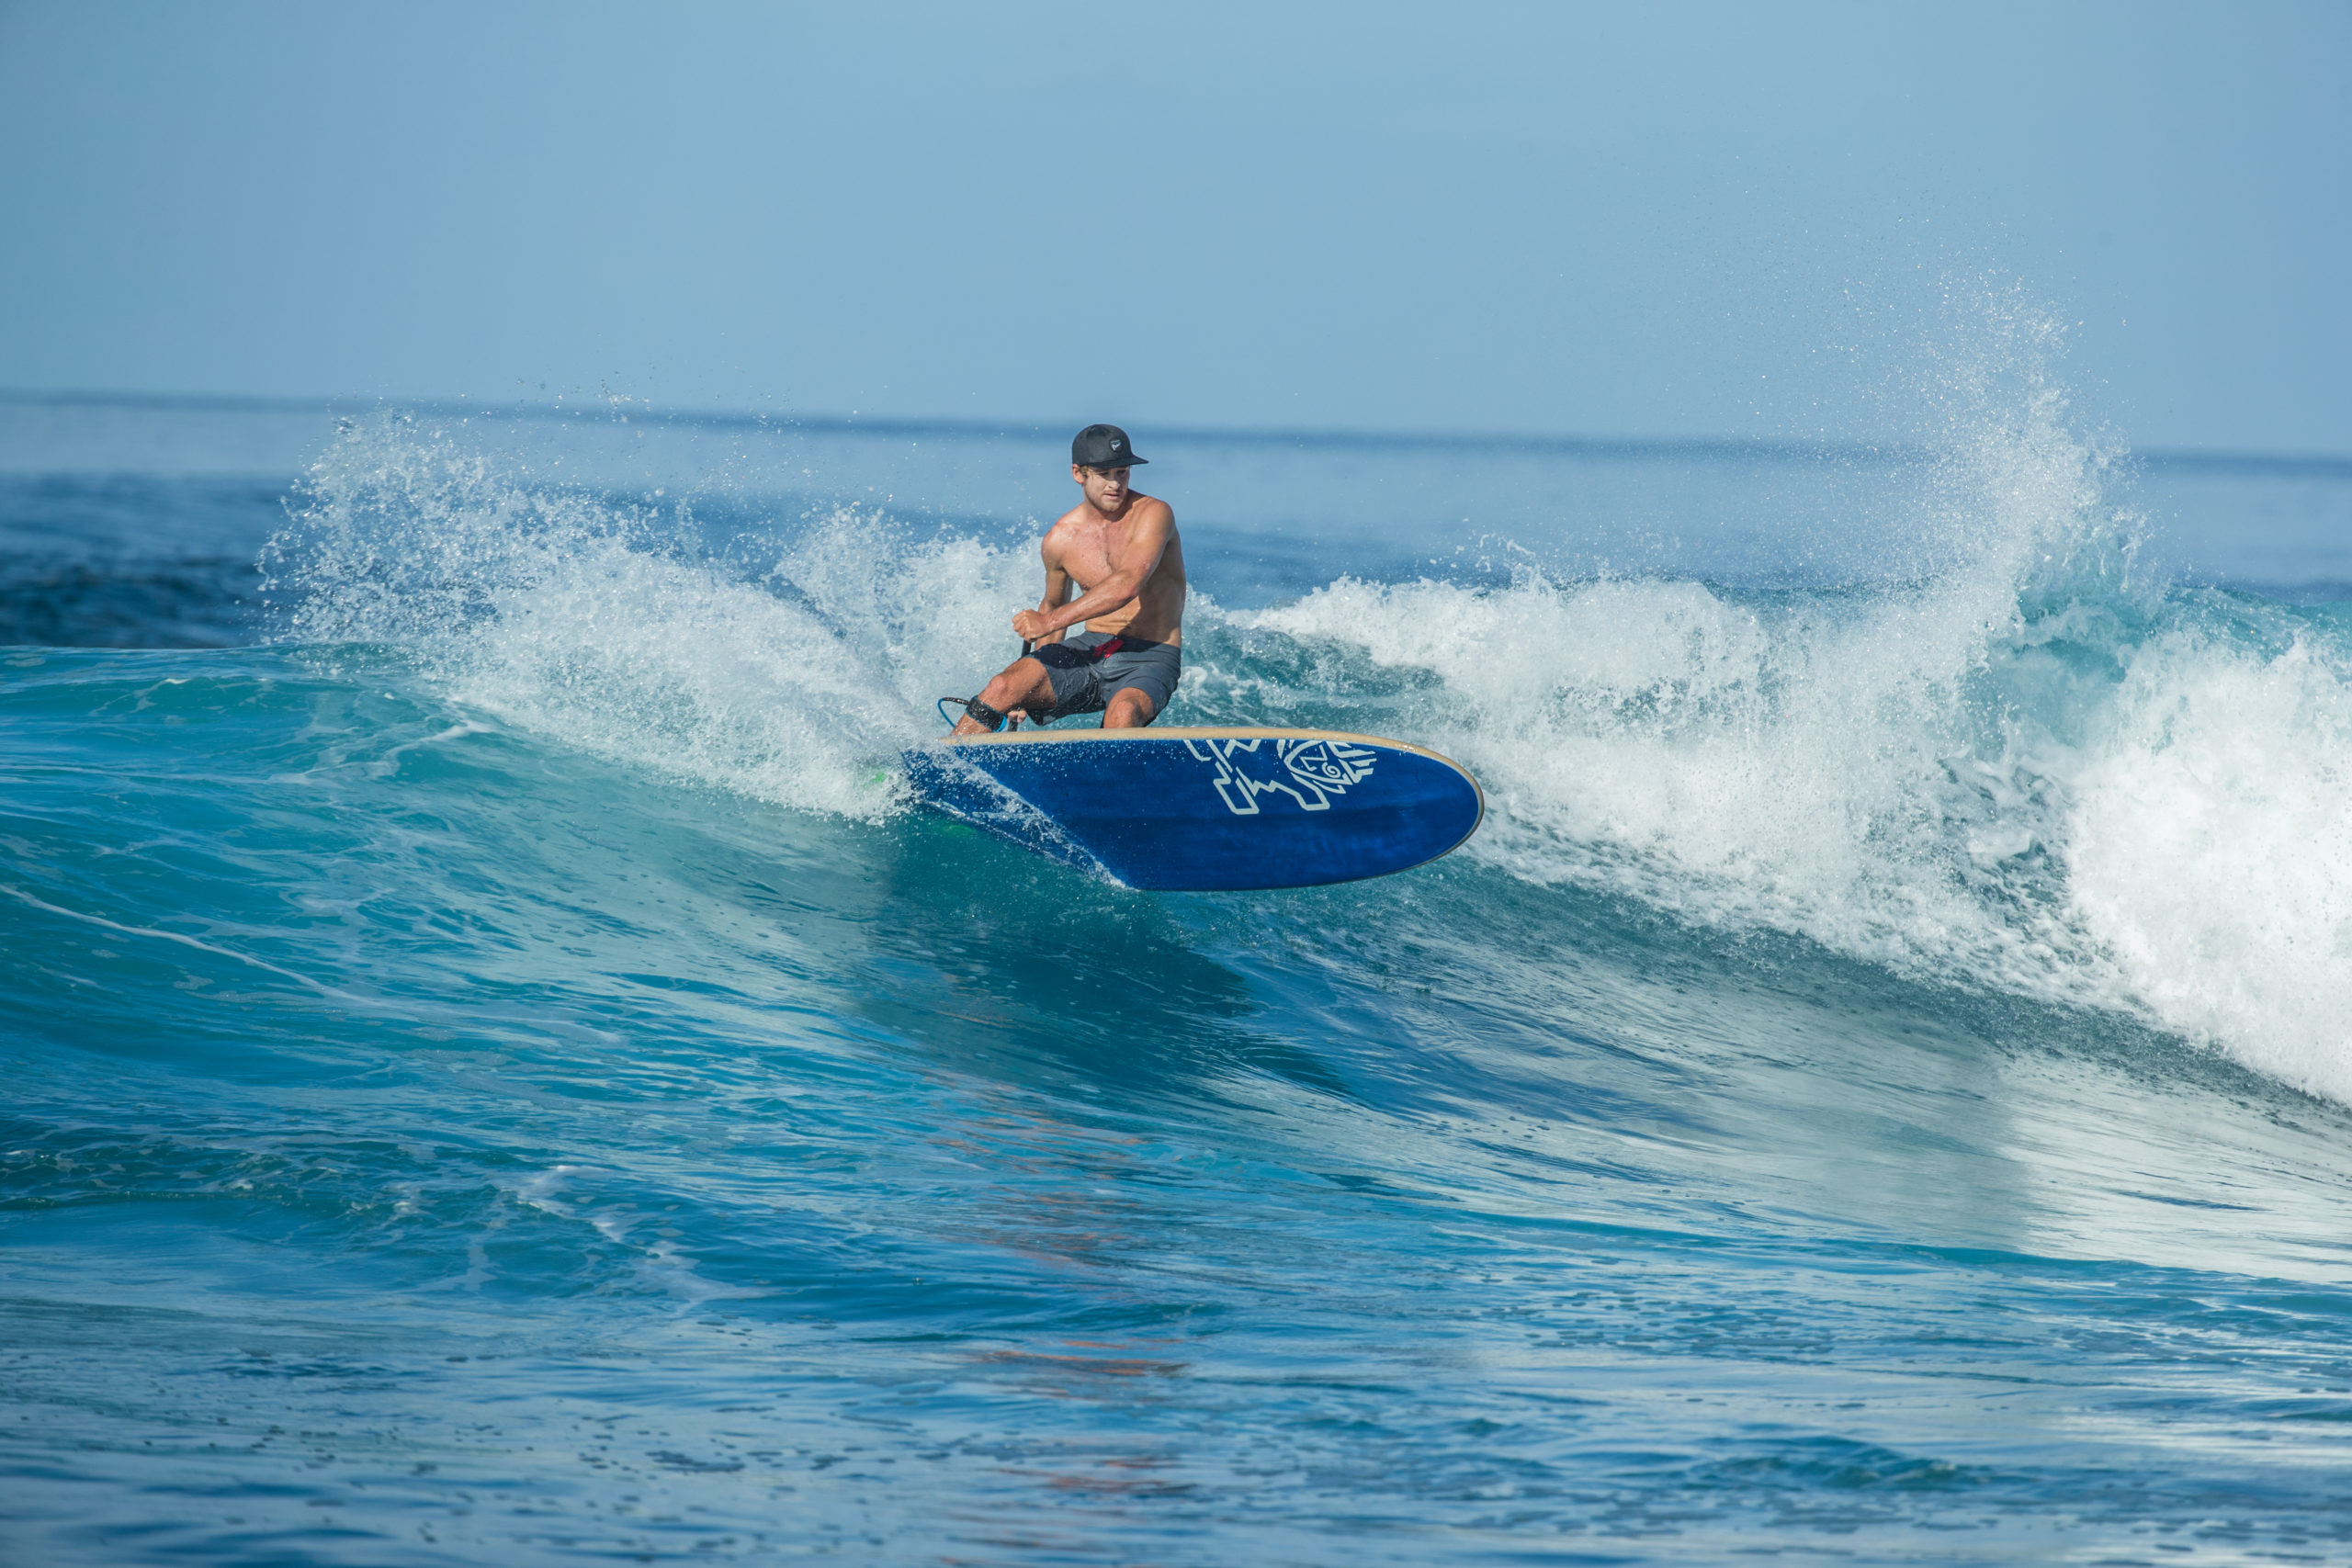 Sygma-sup-school- benoit-Carpentier-sup-surf-camp-supcamp-standuppaddle-stand-up-paddle-book-holiday-portugal-masterclass-worldchampion (3)